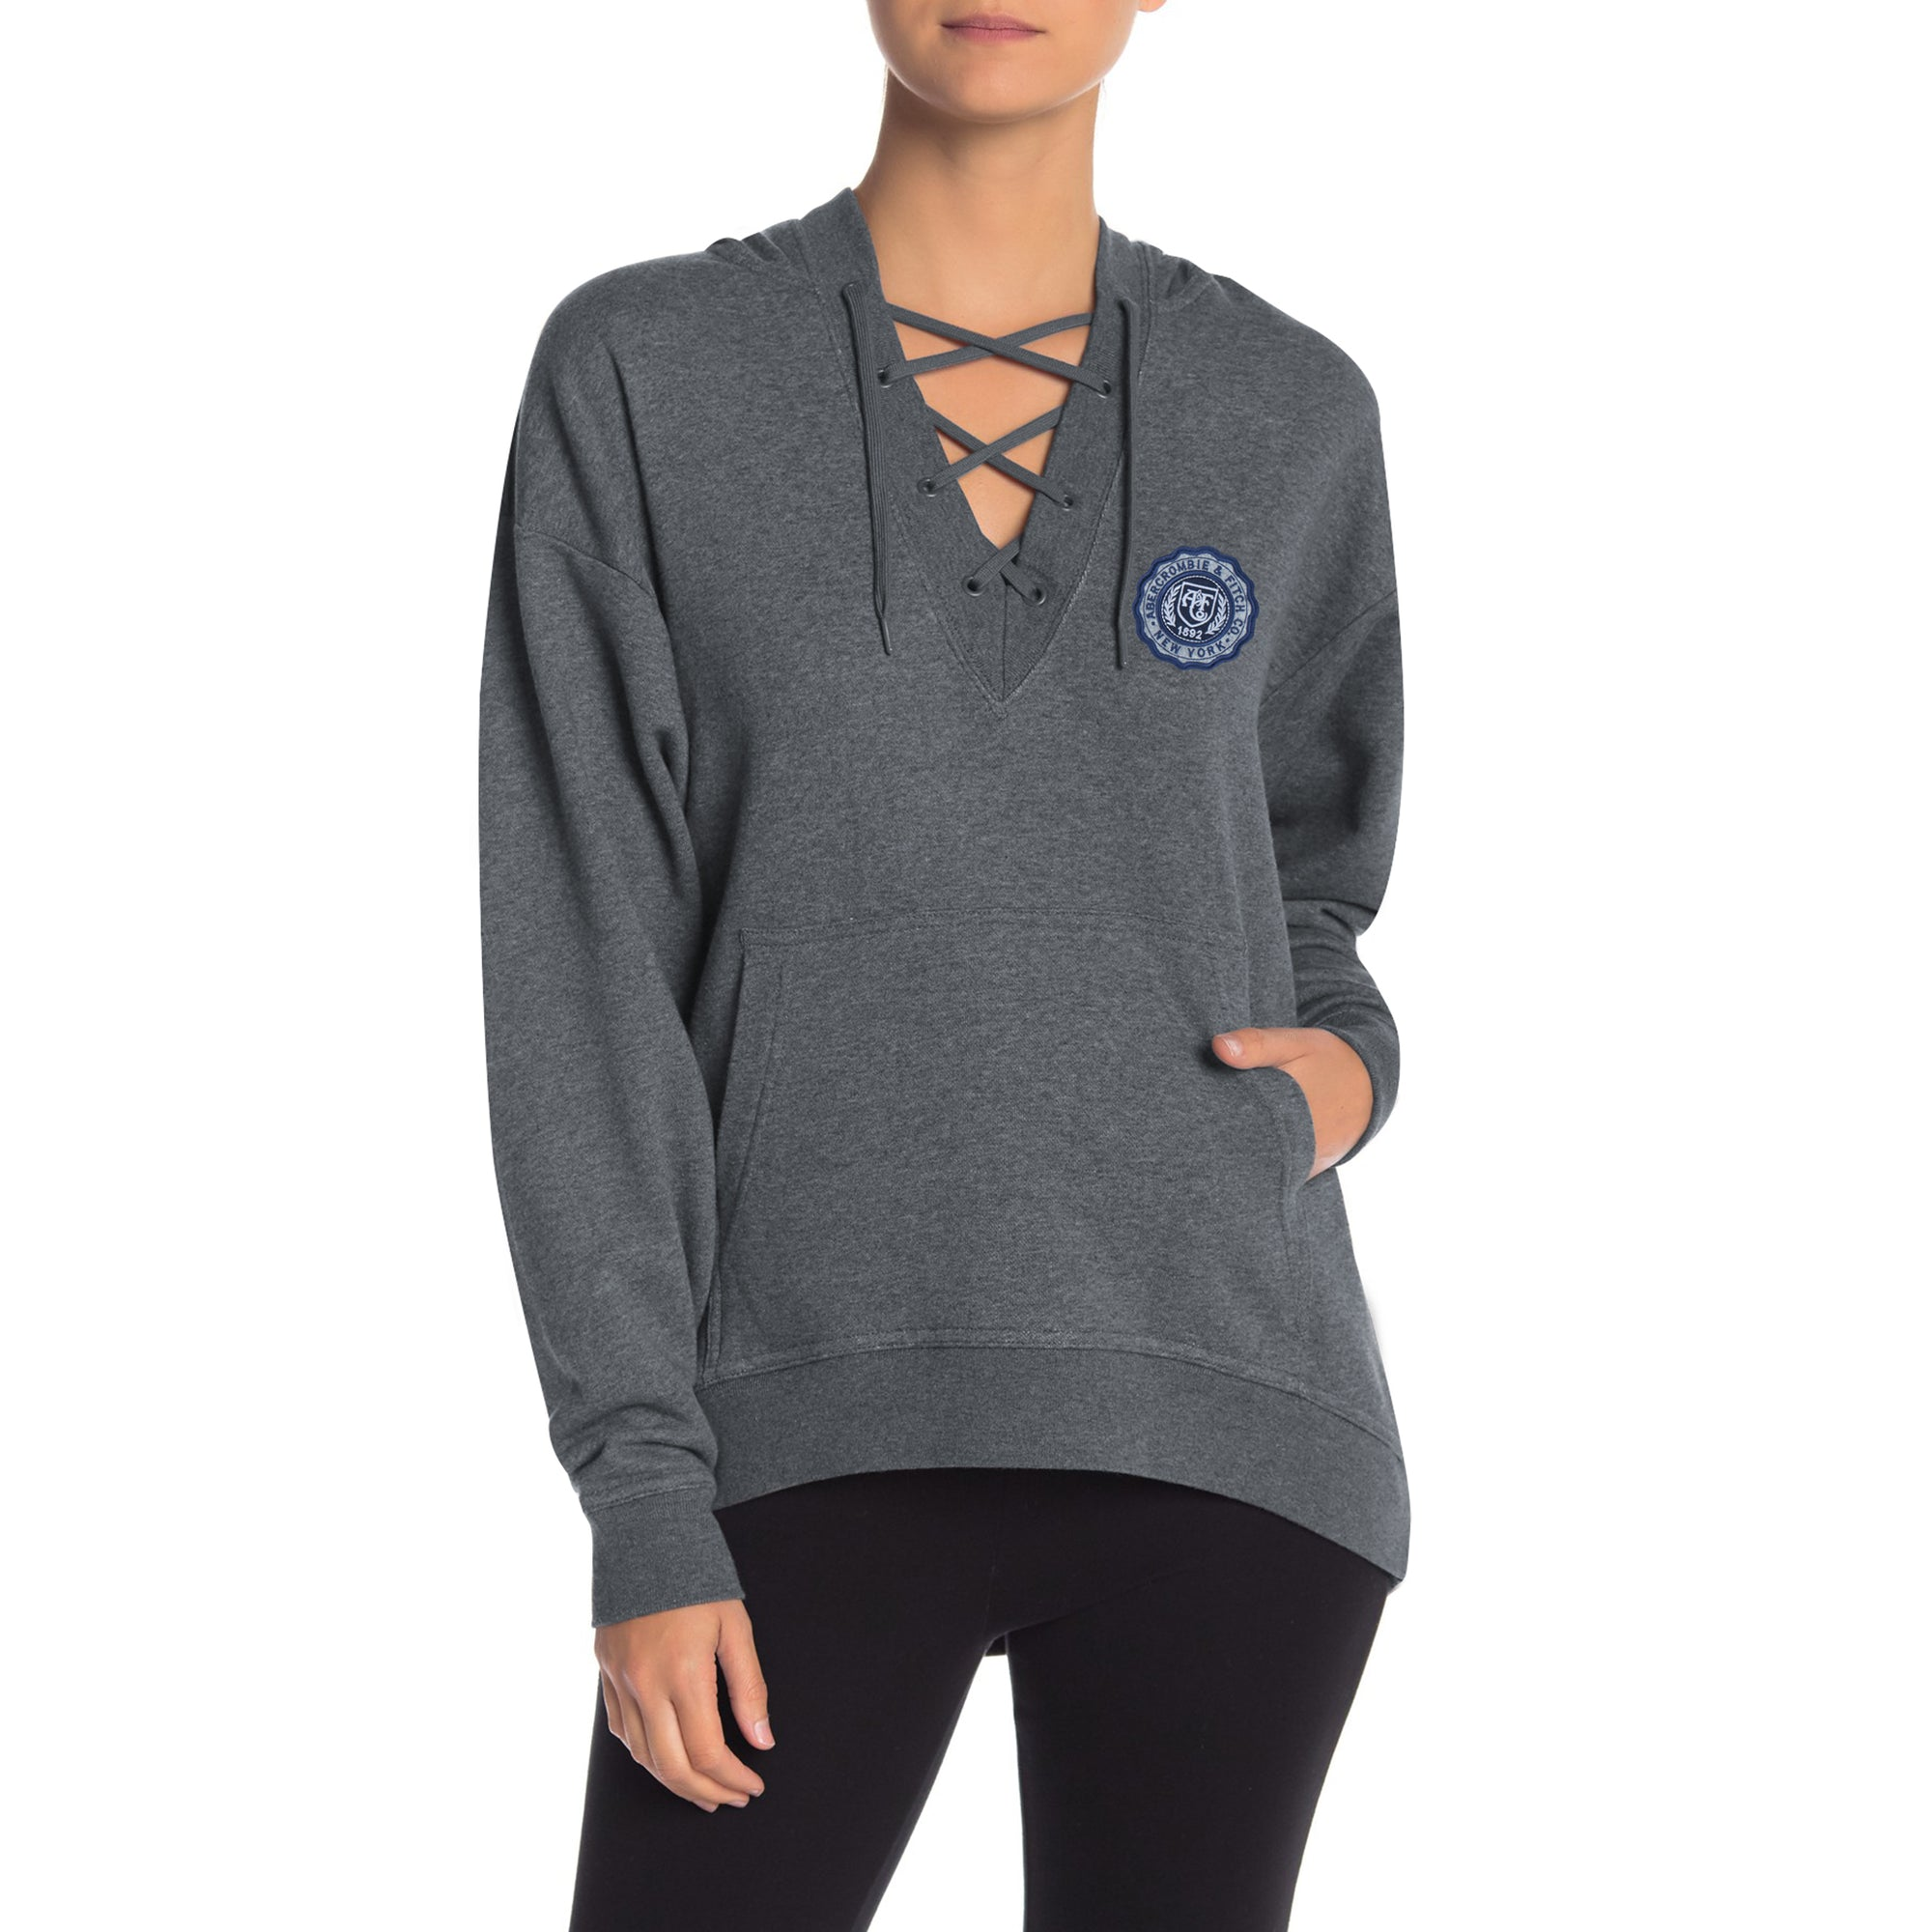 A&F Terry Fleece V Neck Stylish Pullover Hoodie For Ladies-Charcoal Melange-BE6964